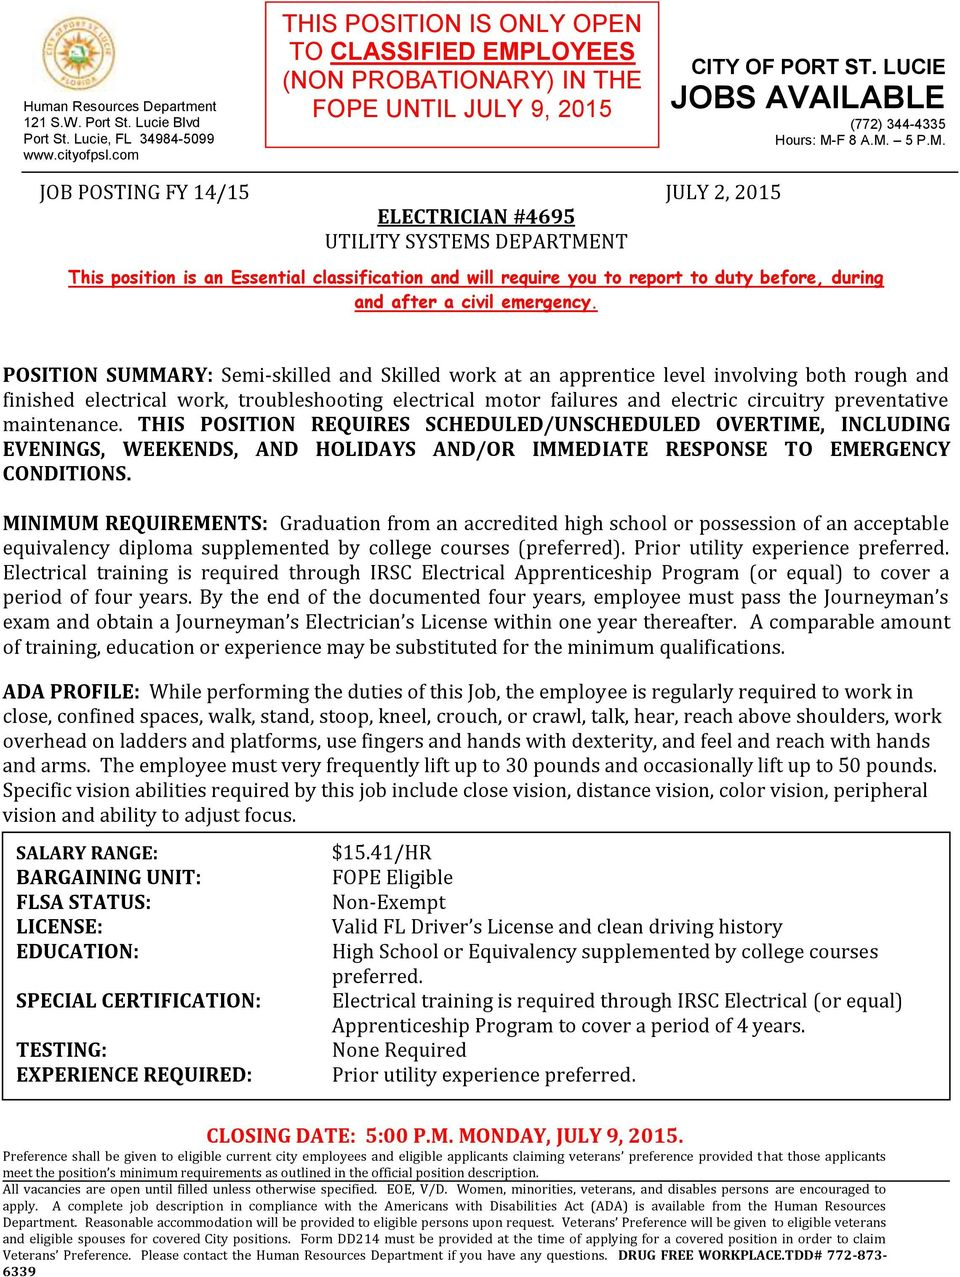 LOYEES (NON PROBATIONARY) IN THE FOPE UNTIL JULY 9, 2015 CITY OF PORT ST. LUCIE JOBS AVAILABLE (772) 344-4335 Hours: M-